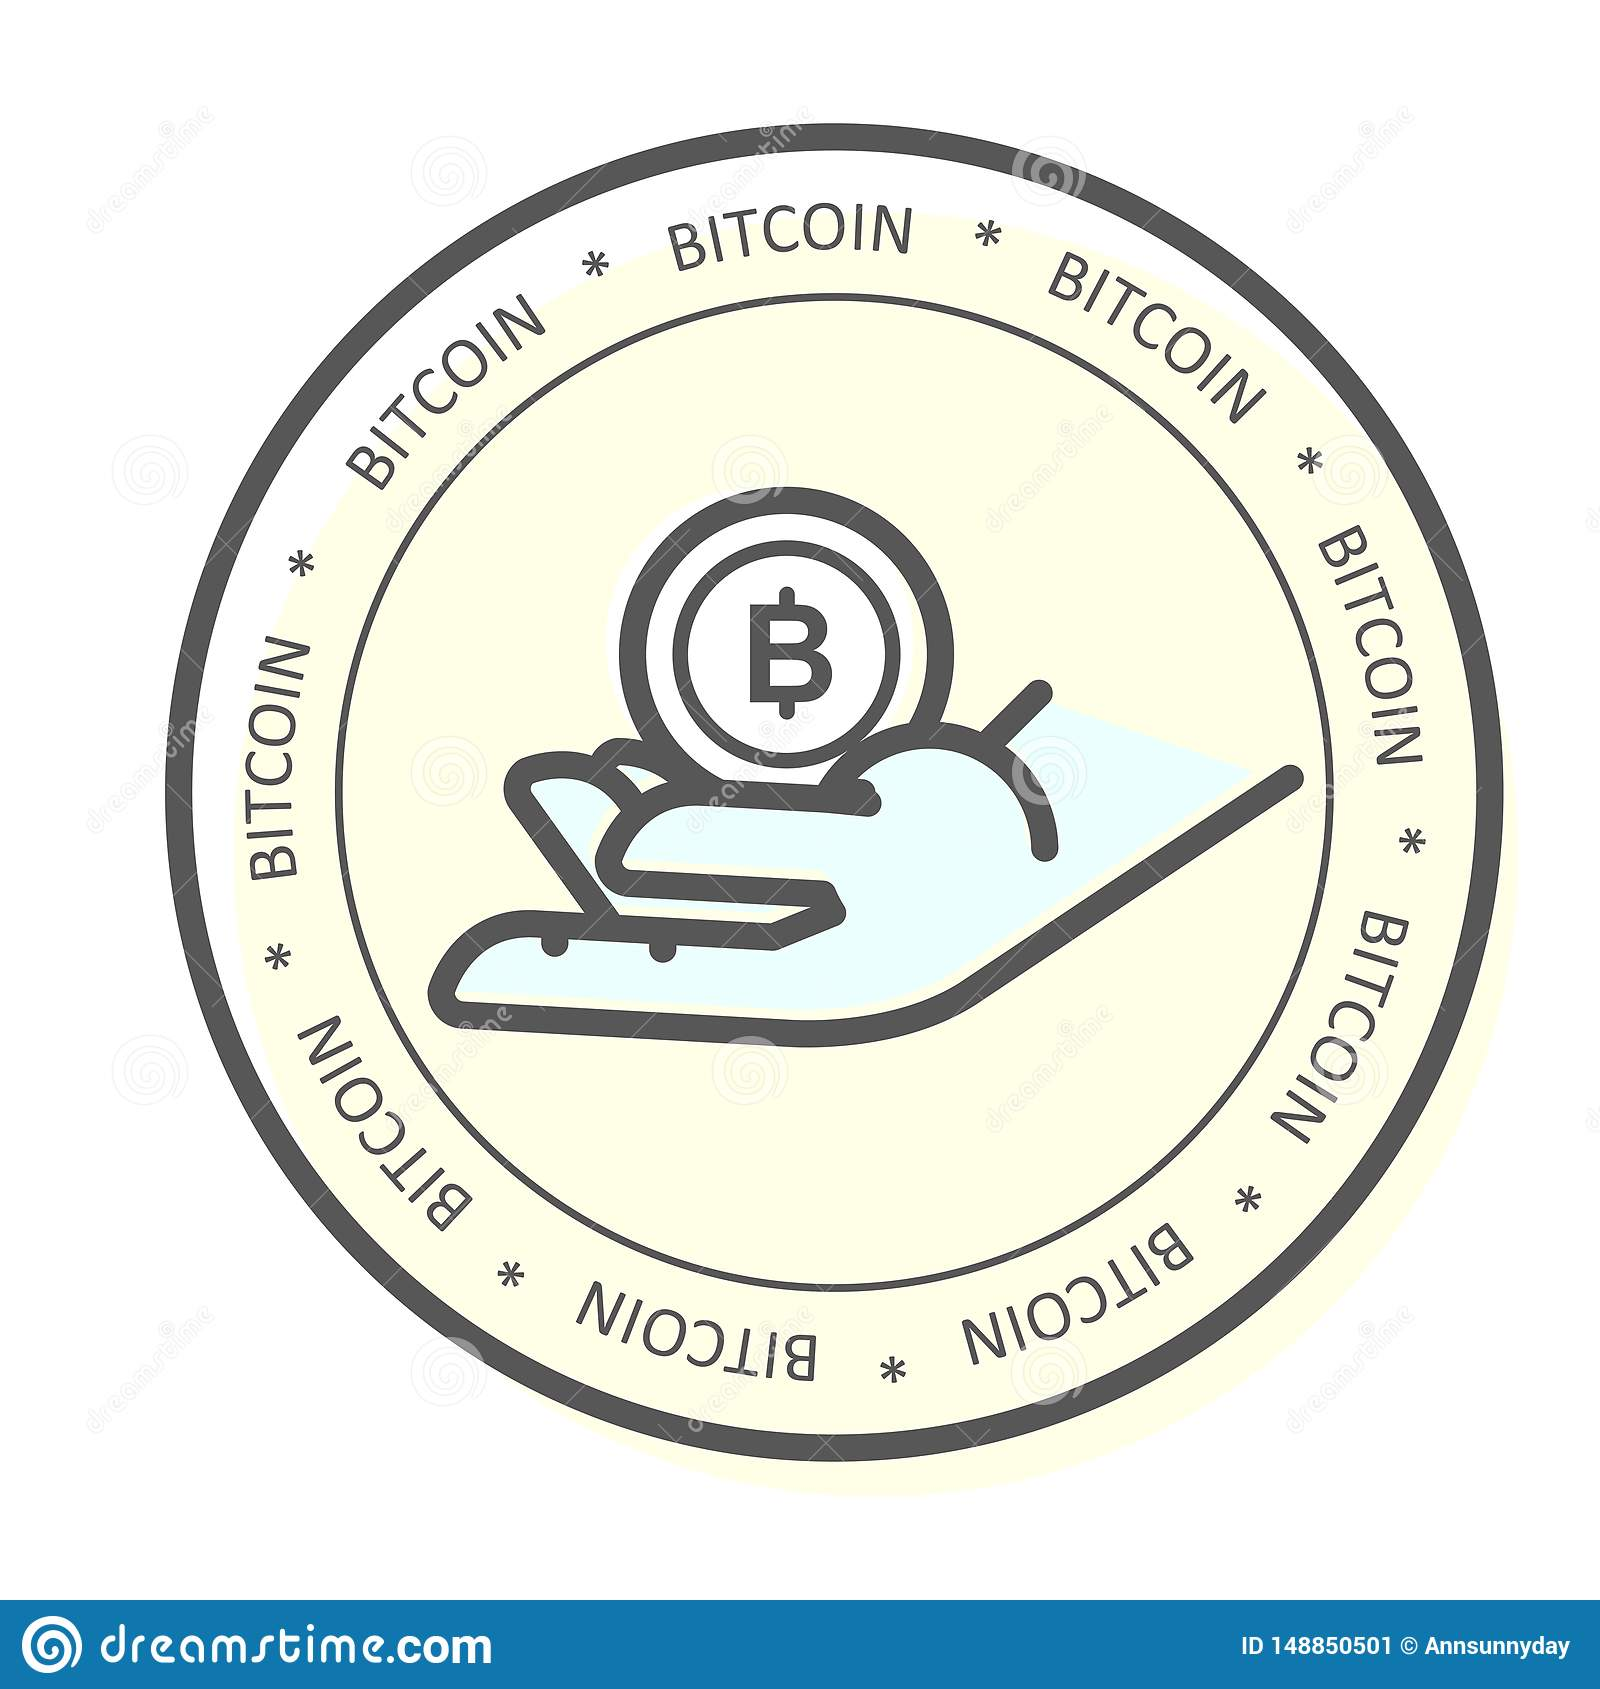 accept cryptocurrency as payment